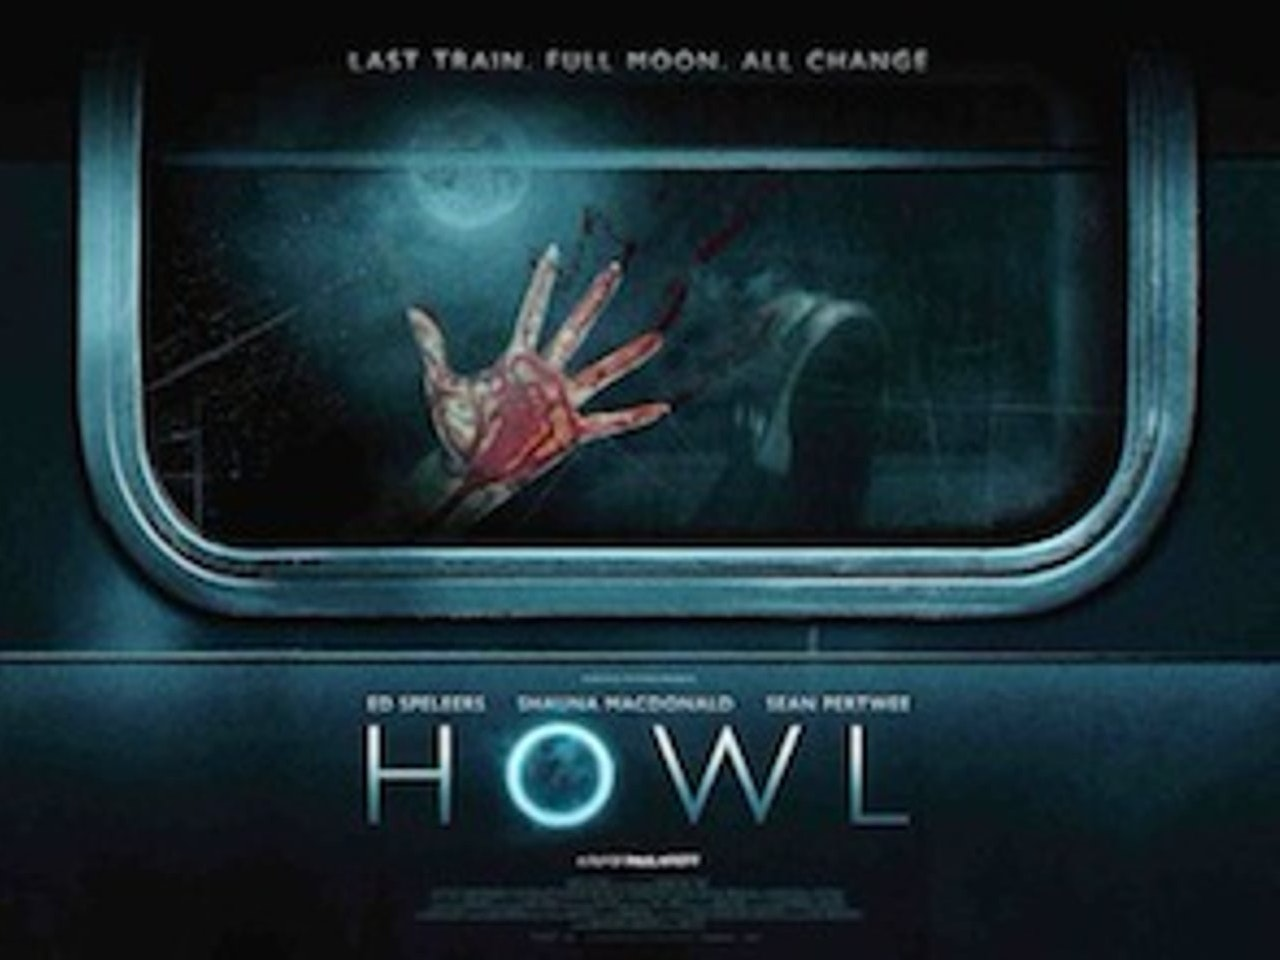 HOWL - movie trailer